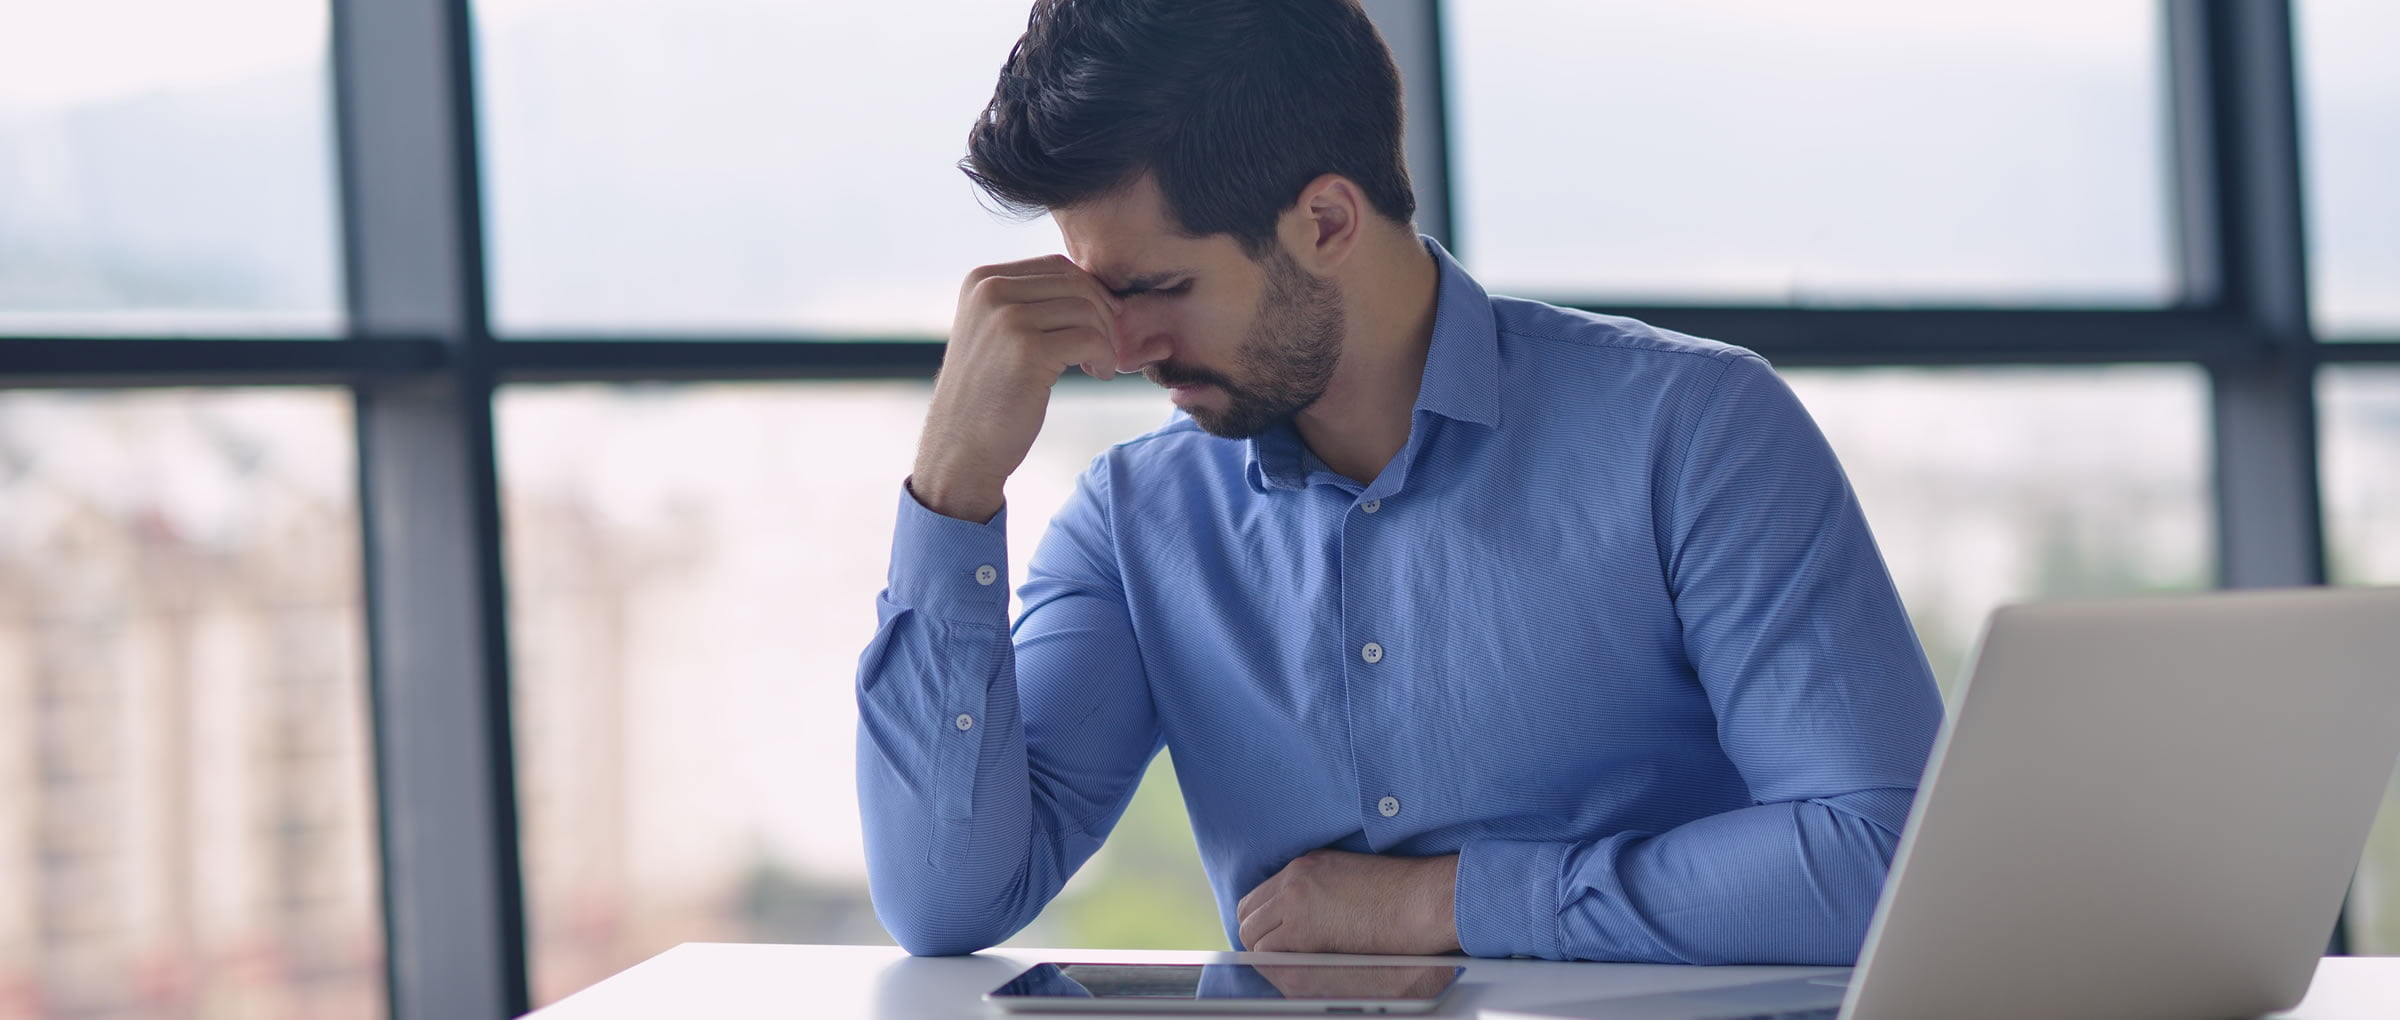 Is Stress Linked To Male Infertility?